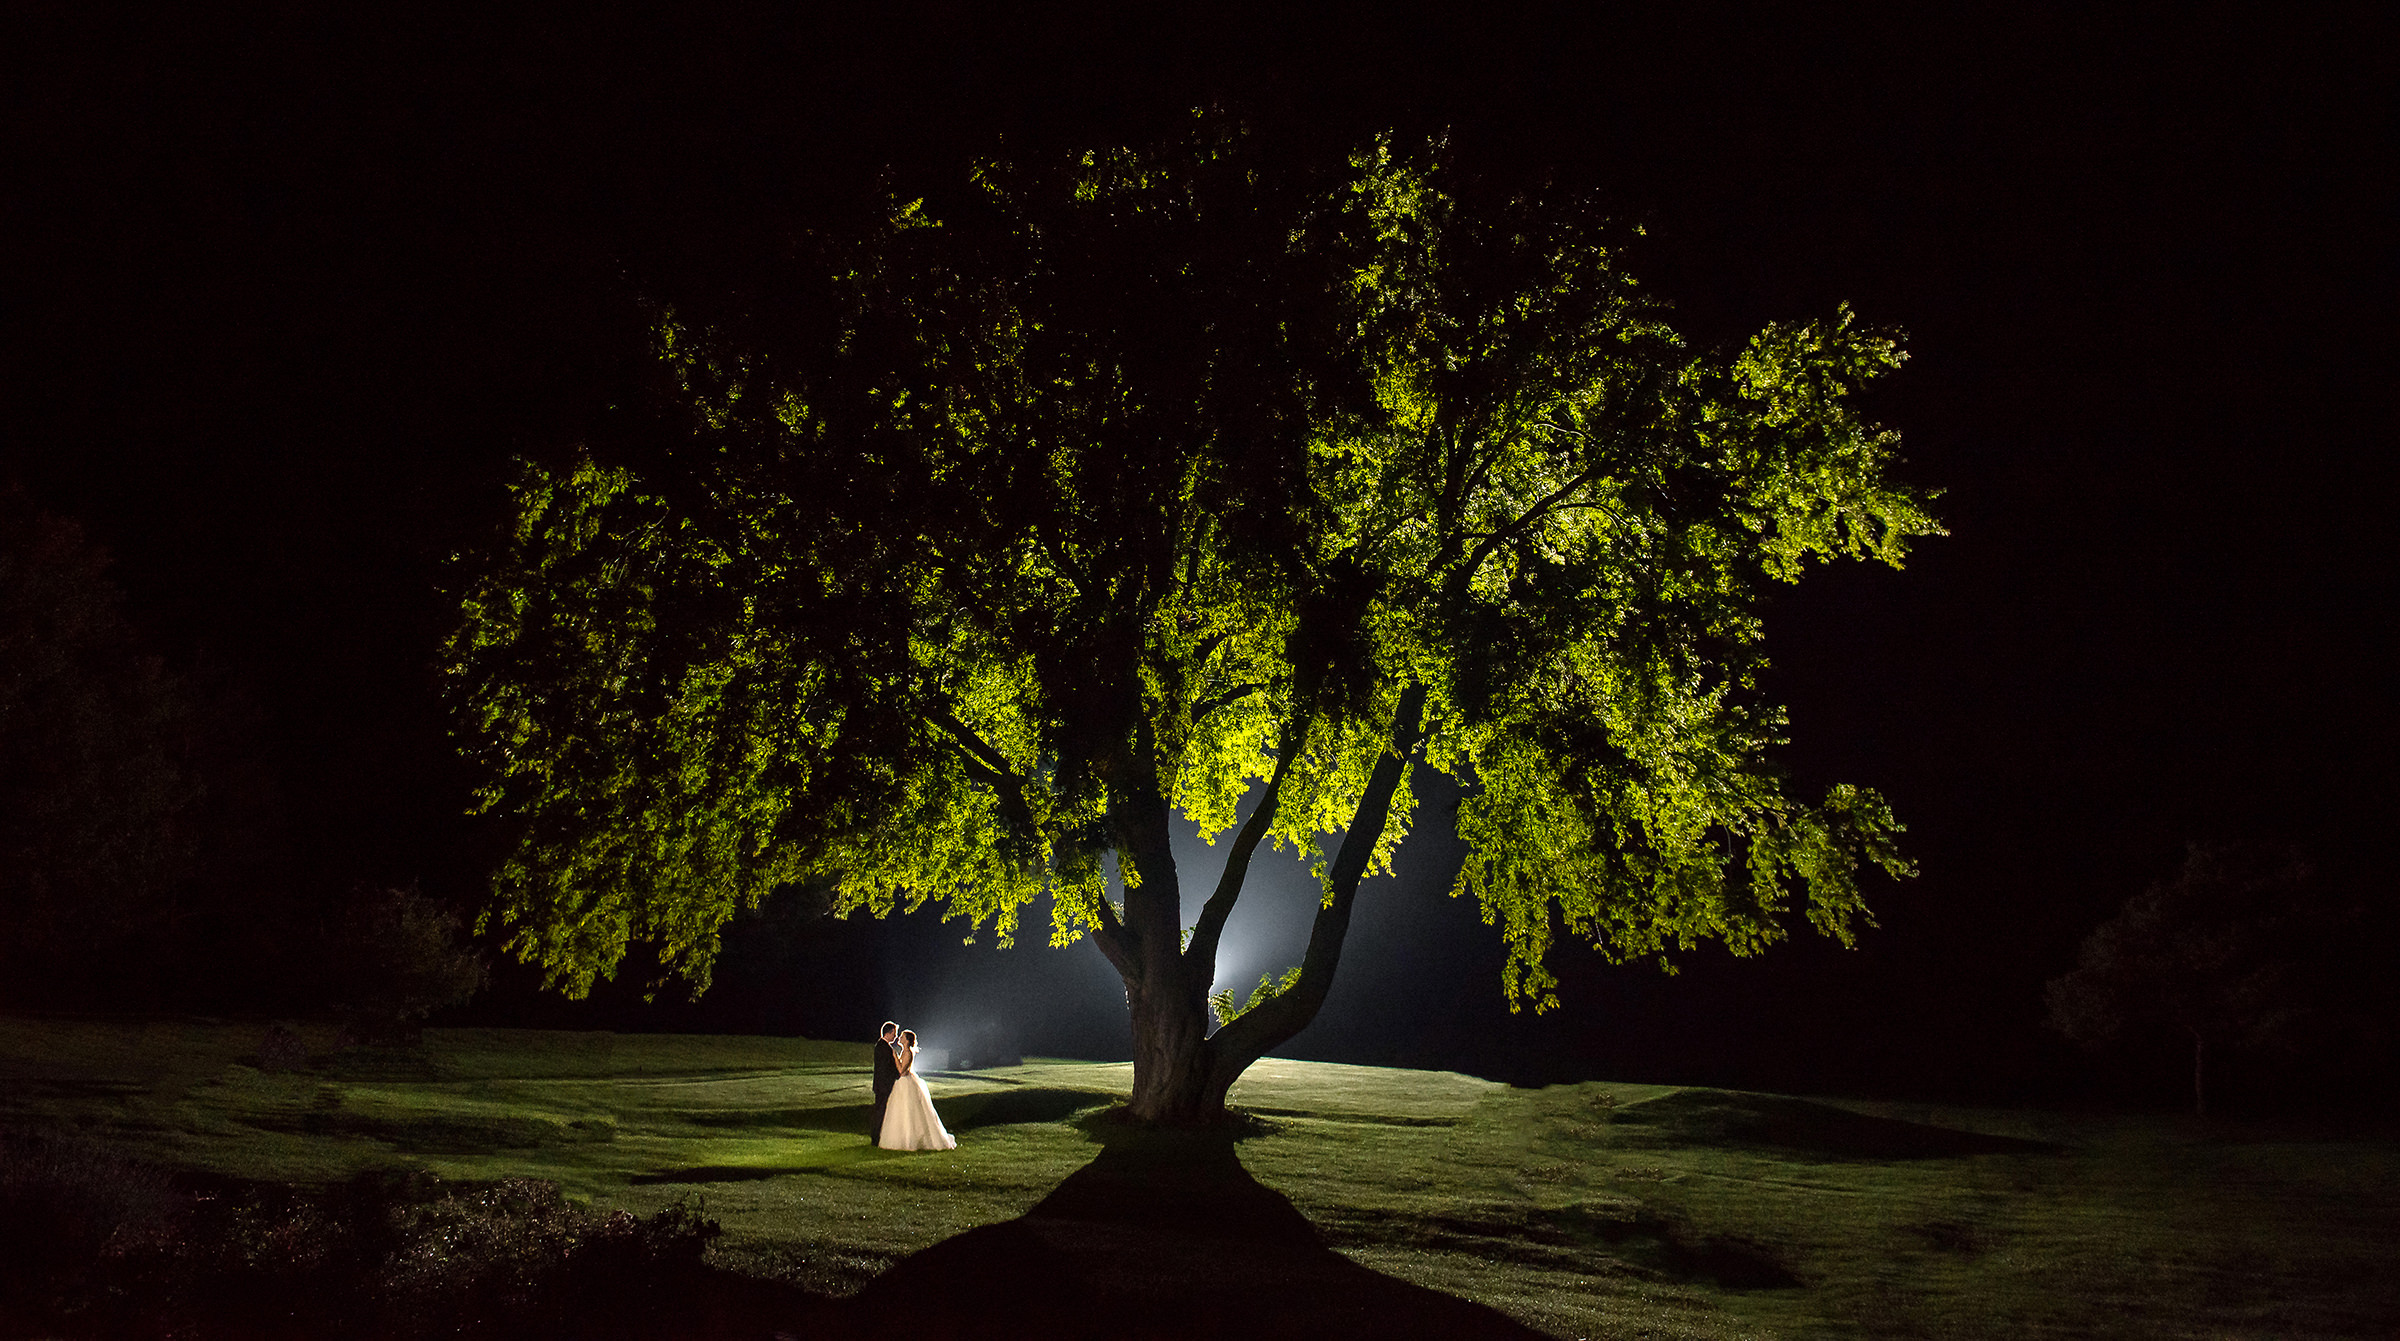 Classic couple portrait at night under spreading tree by David & Sherry Photography